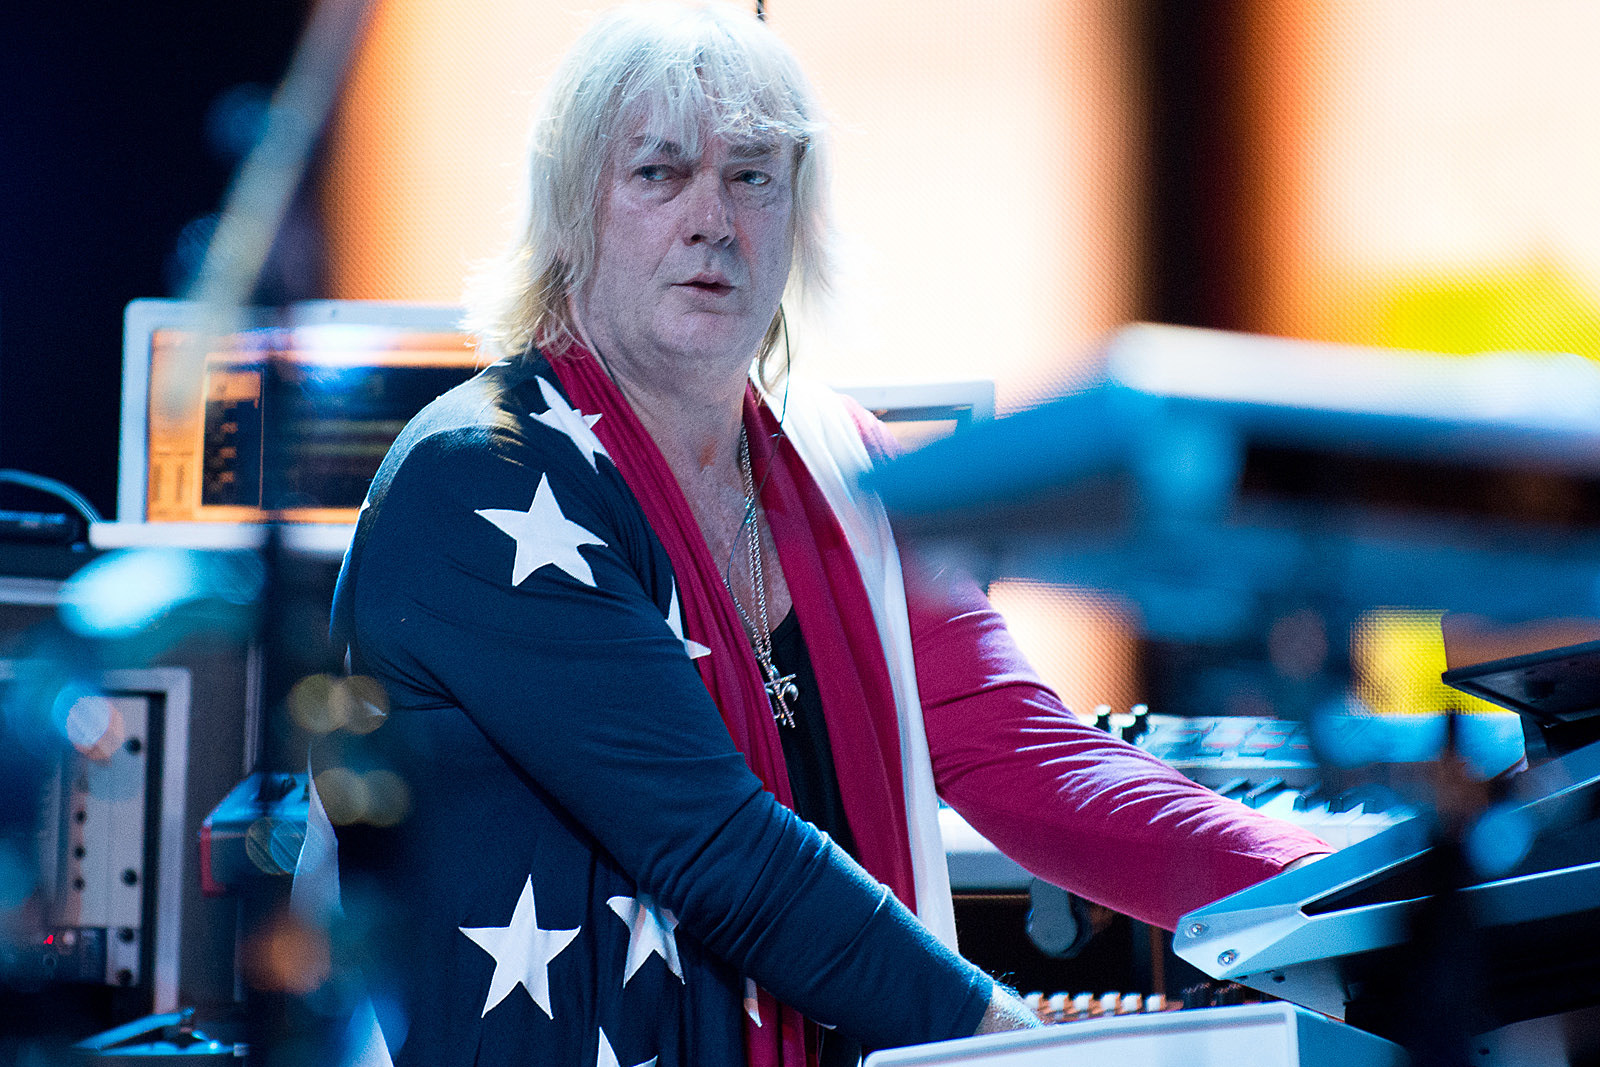 Yes Update Songwriting Credits After Geoff Downes' Tape Mix-Up